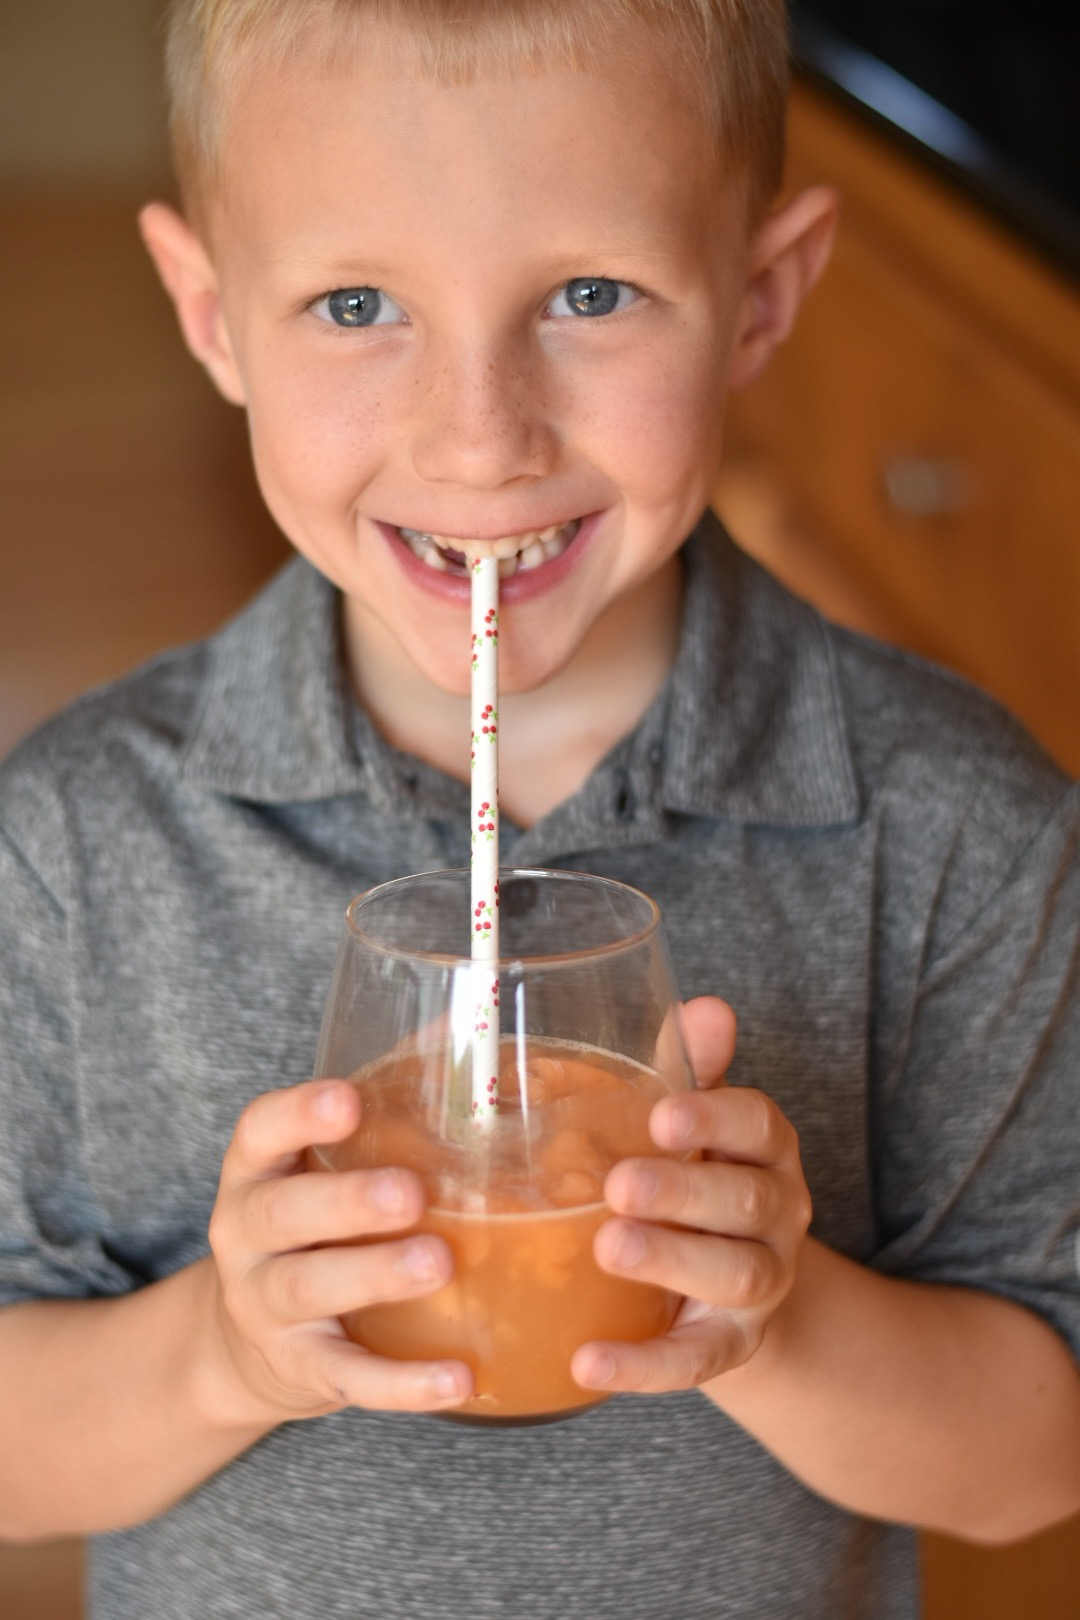 Tips and Tricks for Feeding Kids